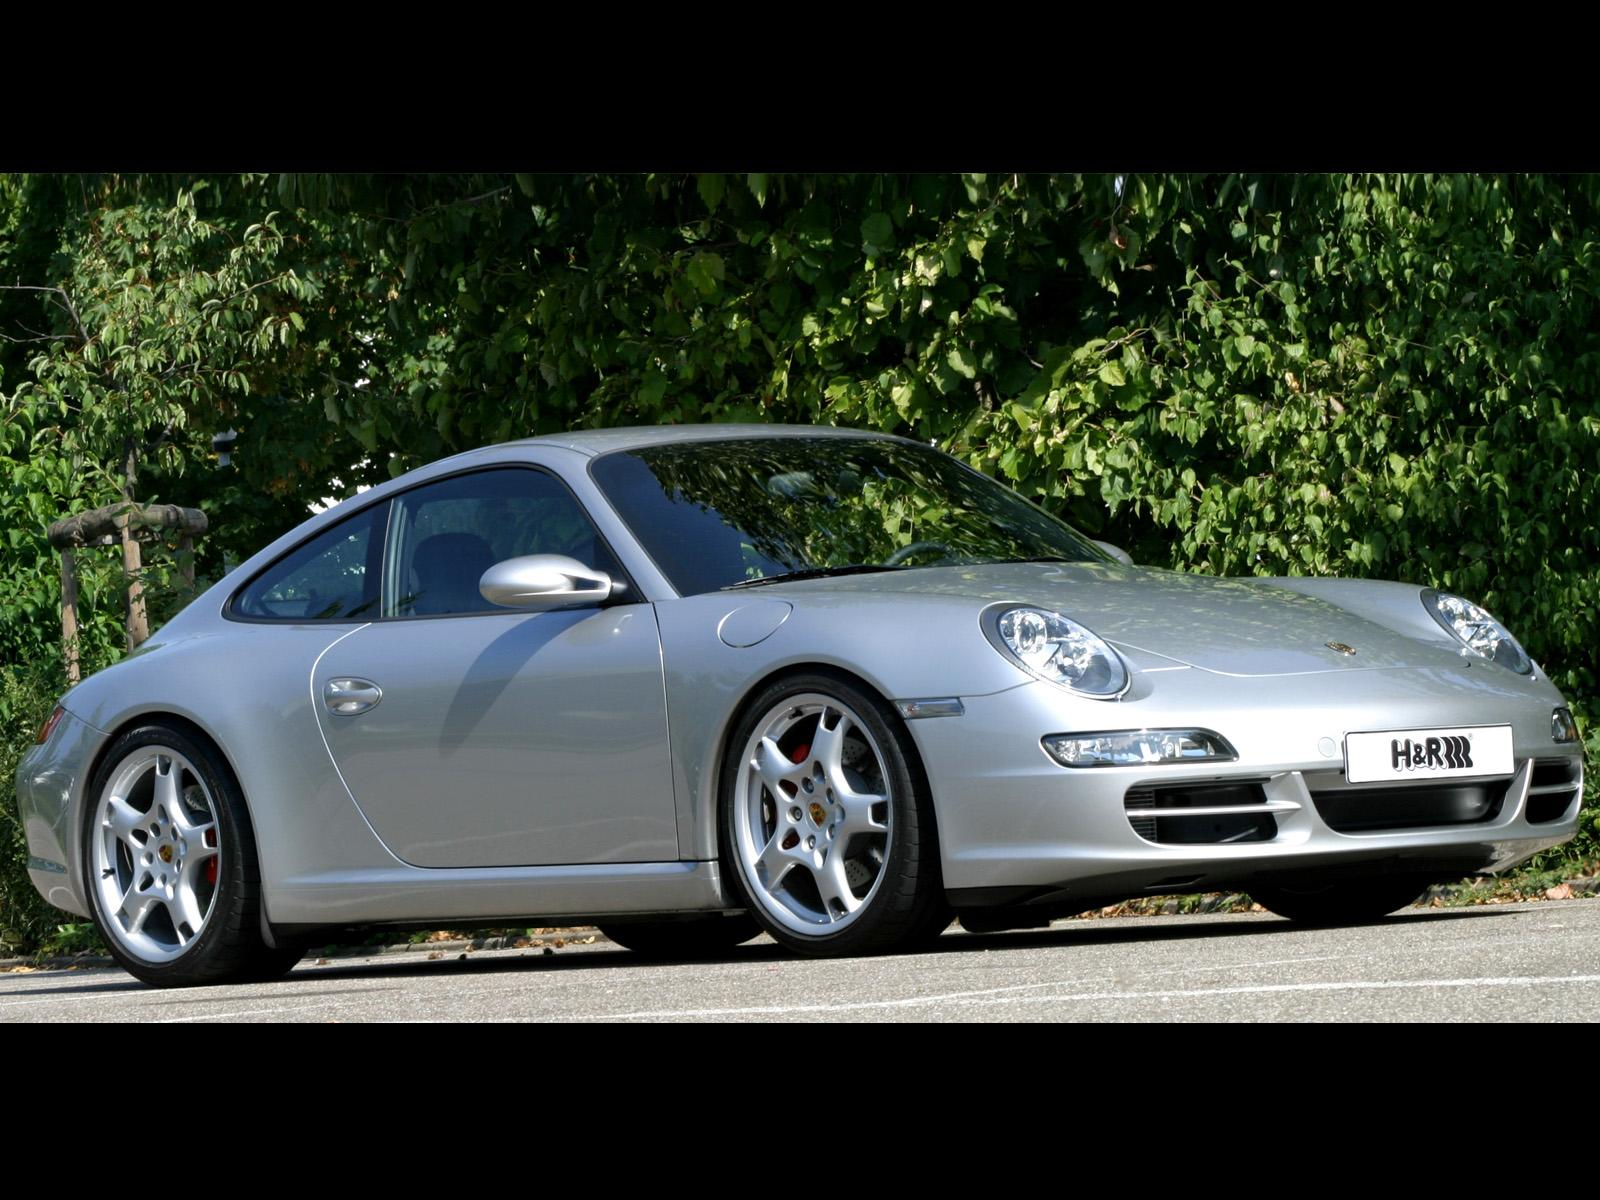 h r springs porsche 997 911 carrera photos photogallery with 1 pics. Black Bedroom Furniture Sets. Home Design Ideas